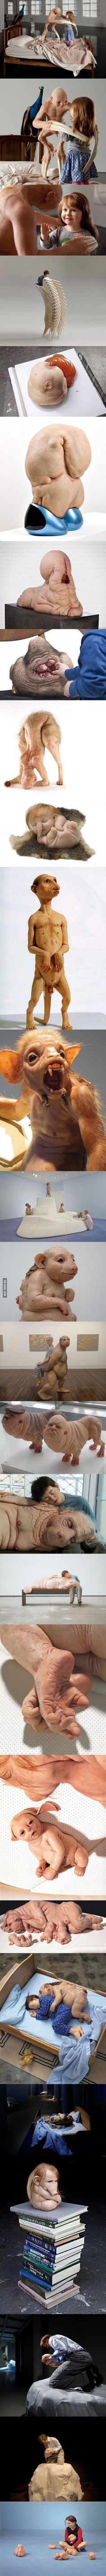 The Bizarre Sculptures Of Patricia Piccinini